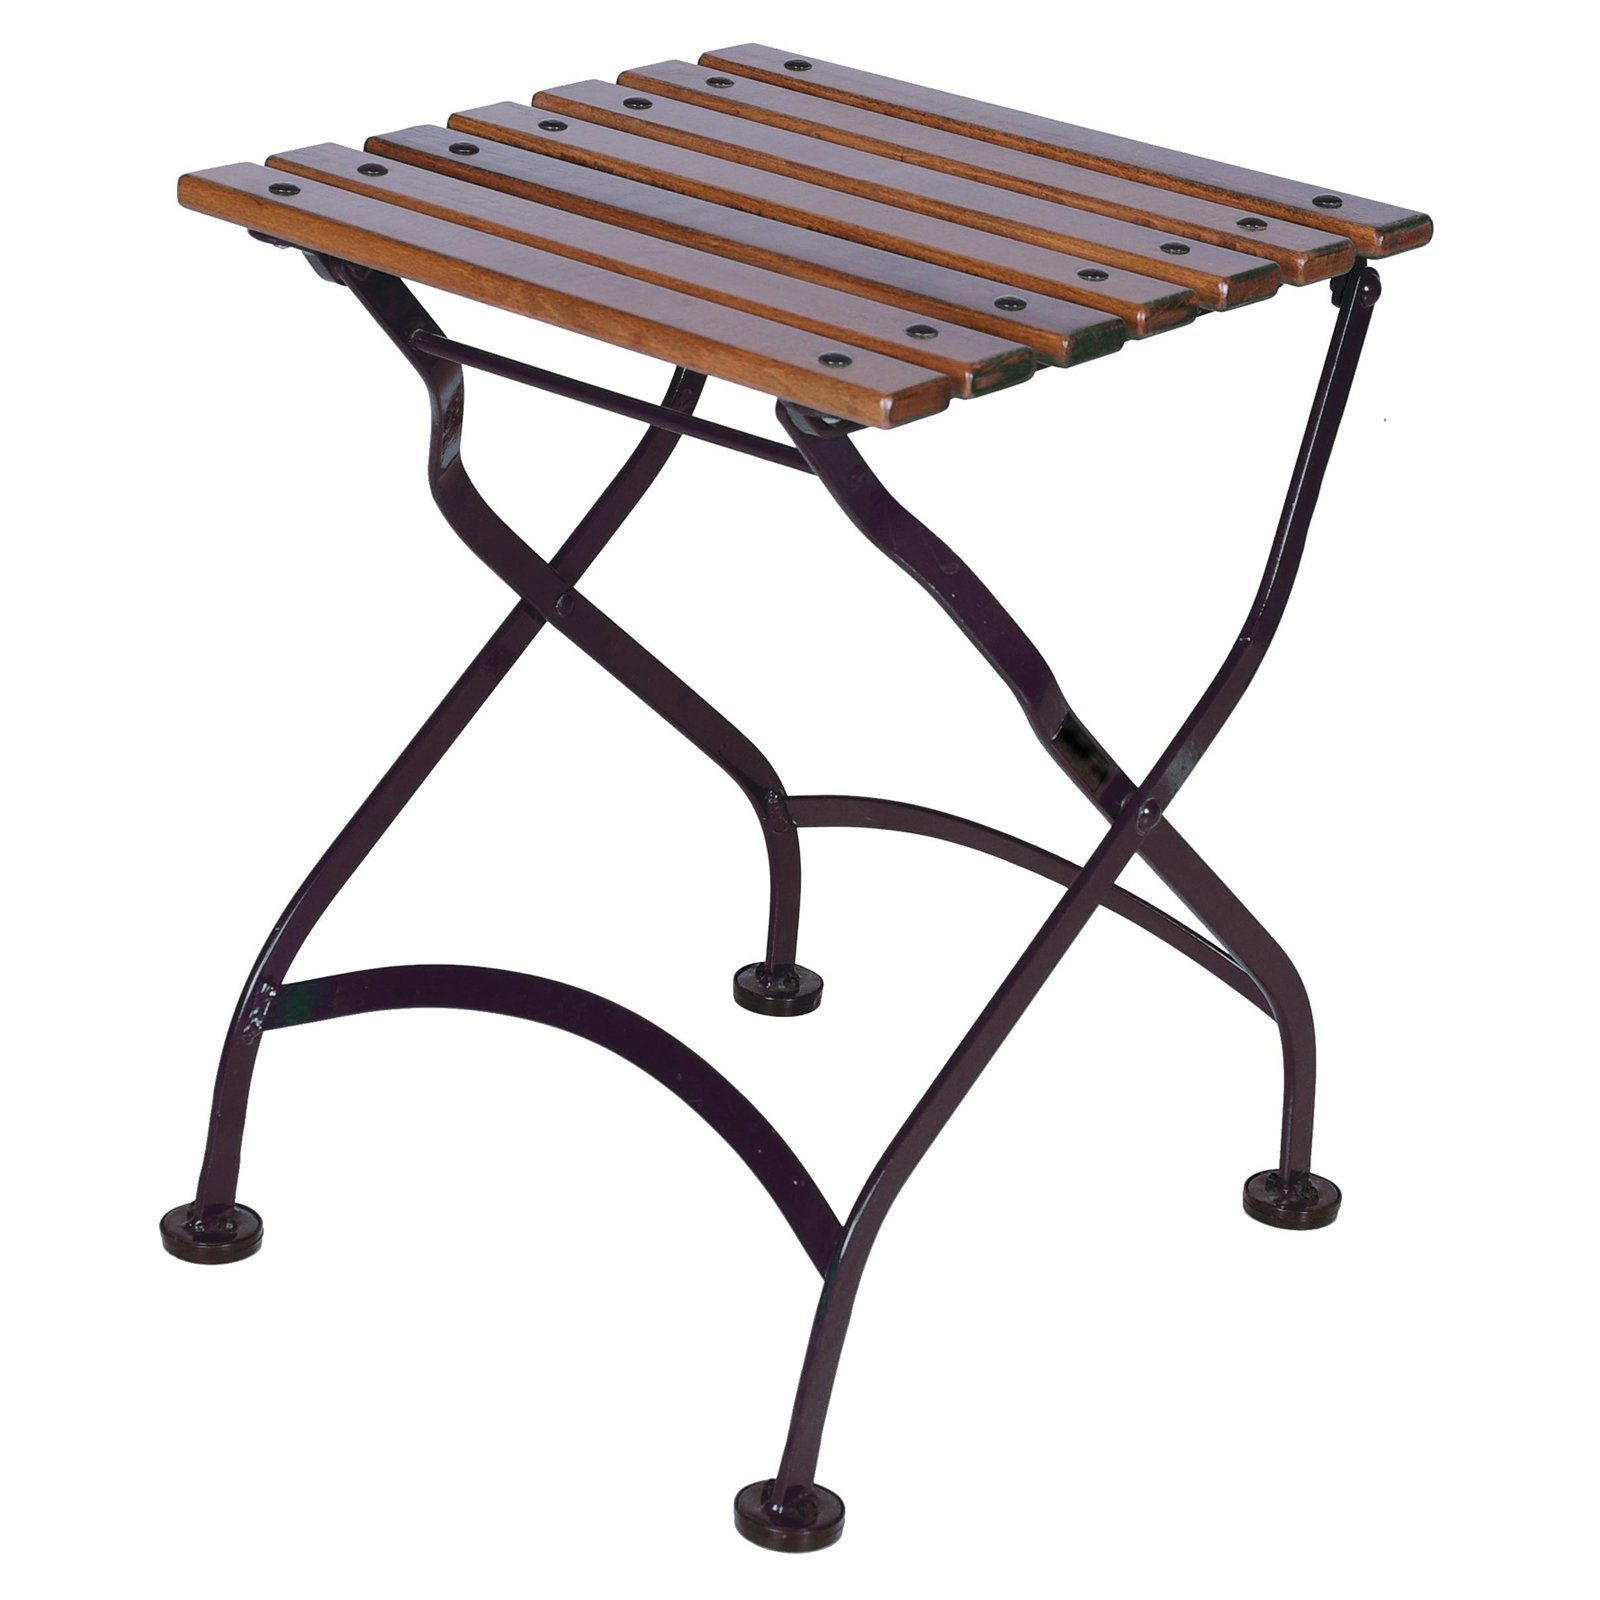 Furniture Designhouse French Veranda European Cafe Square Folding Coffee Table/Bench with European Chestnut Wood Slats